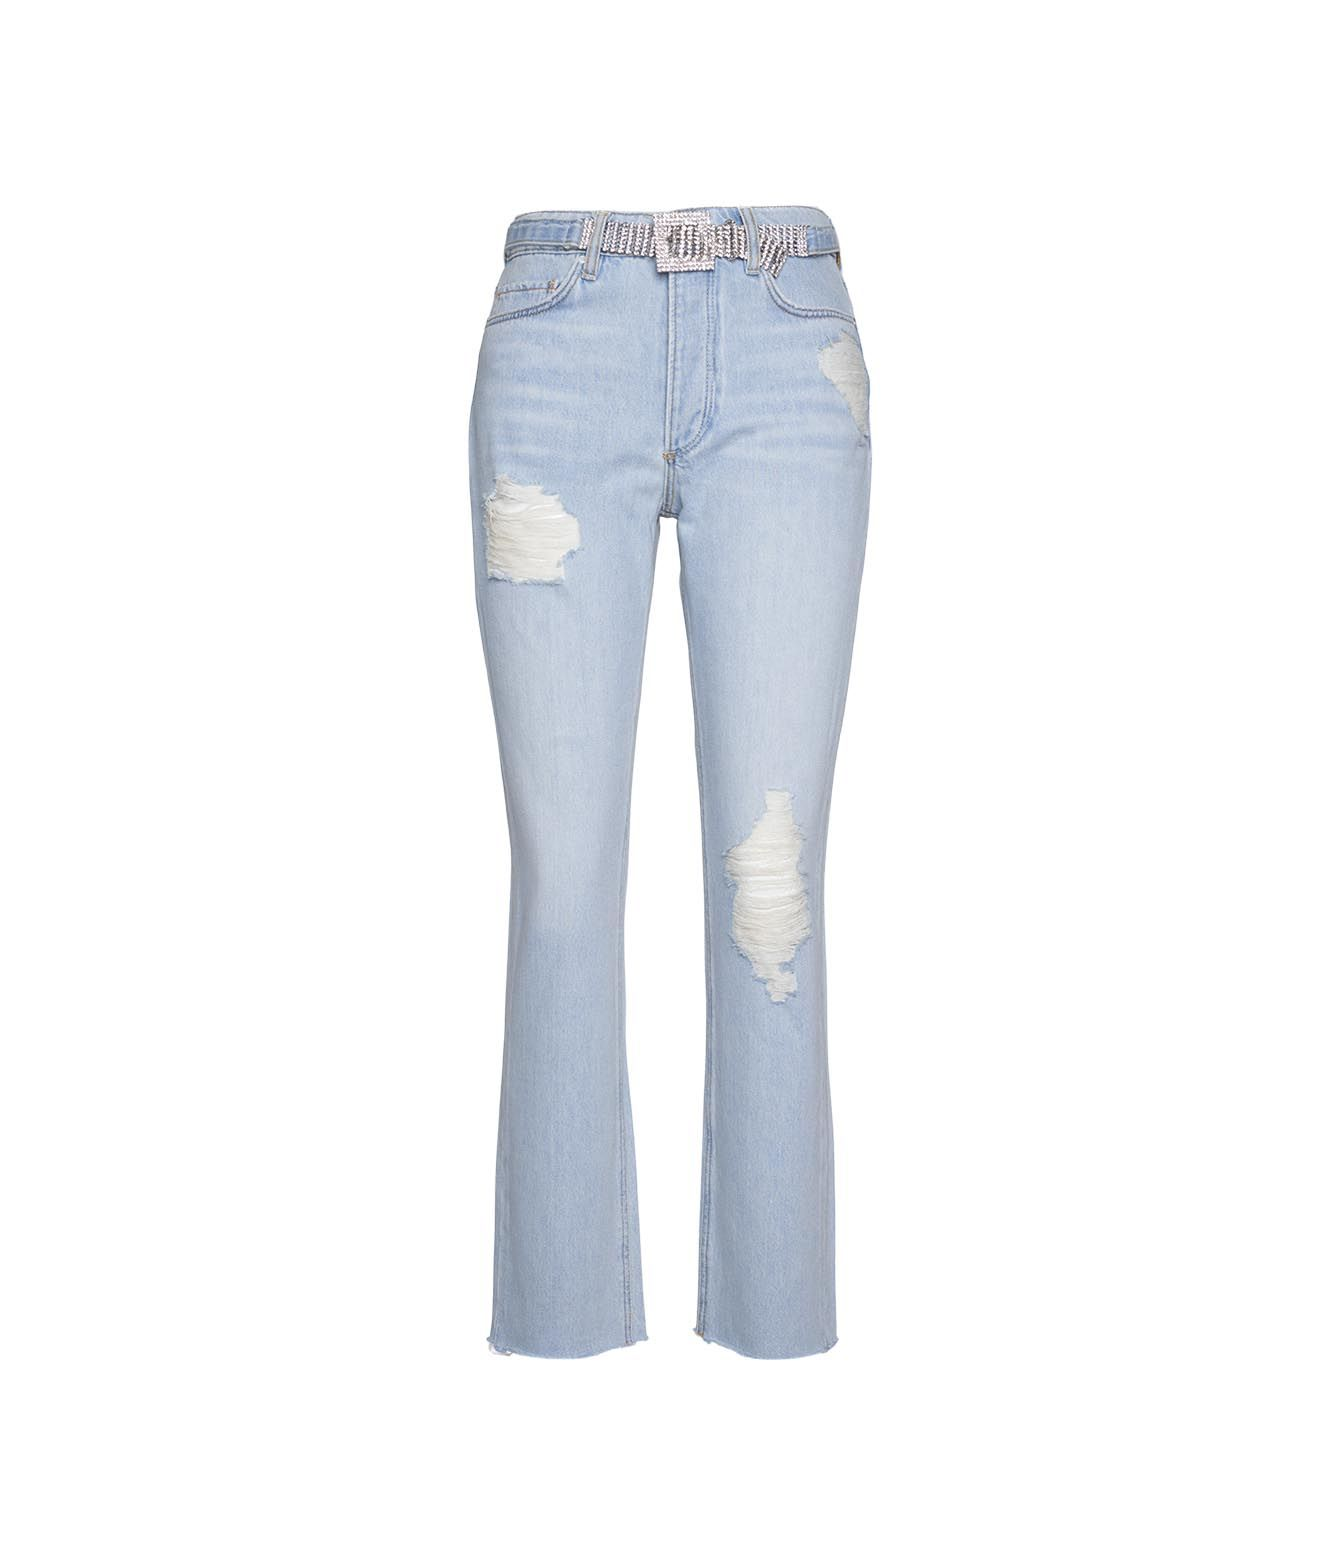 Guess Jeans GUESS WOMEN'S W1RA16D3Y0I11SHNJ BLUE OTHER MATERIALS JEANS